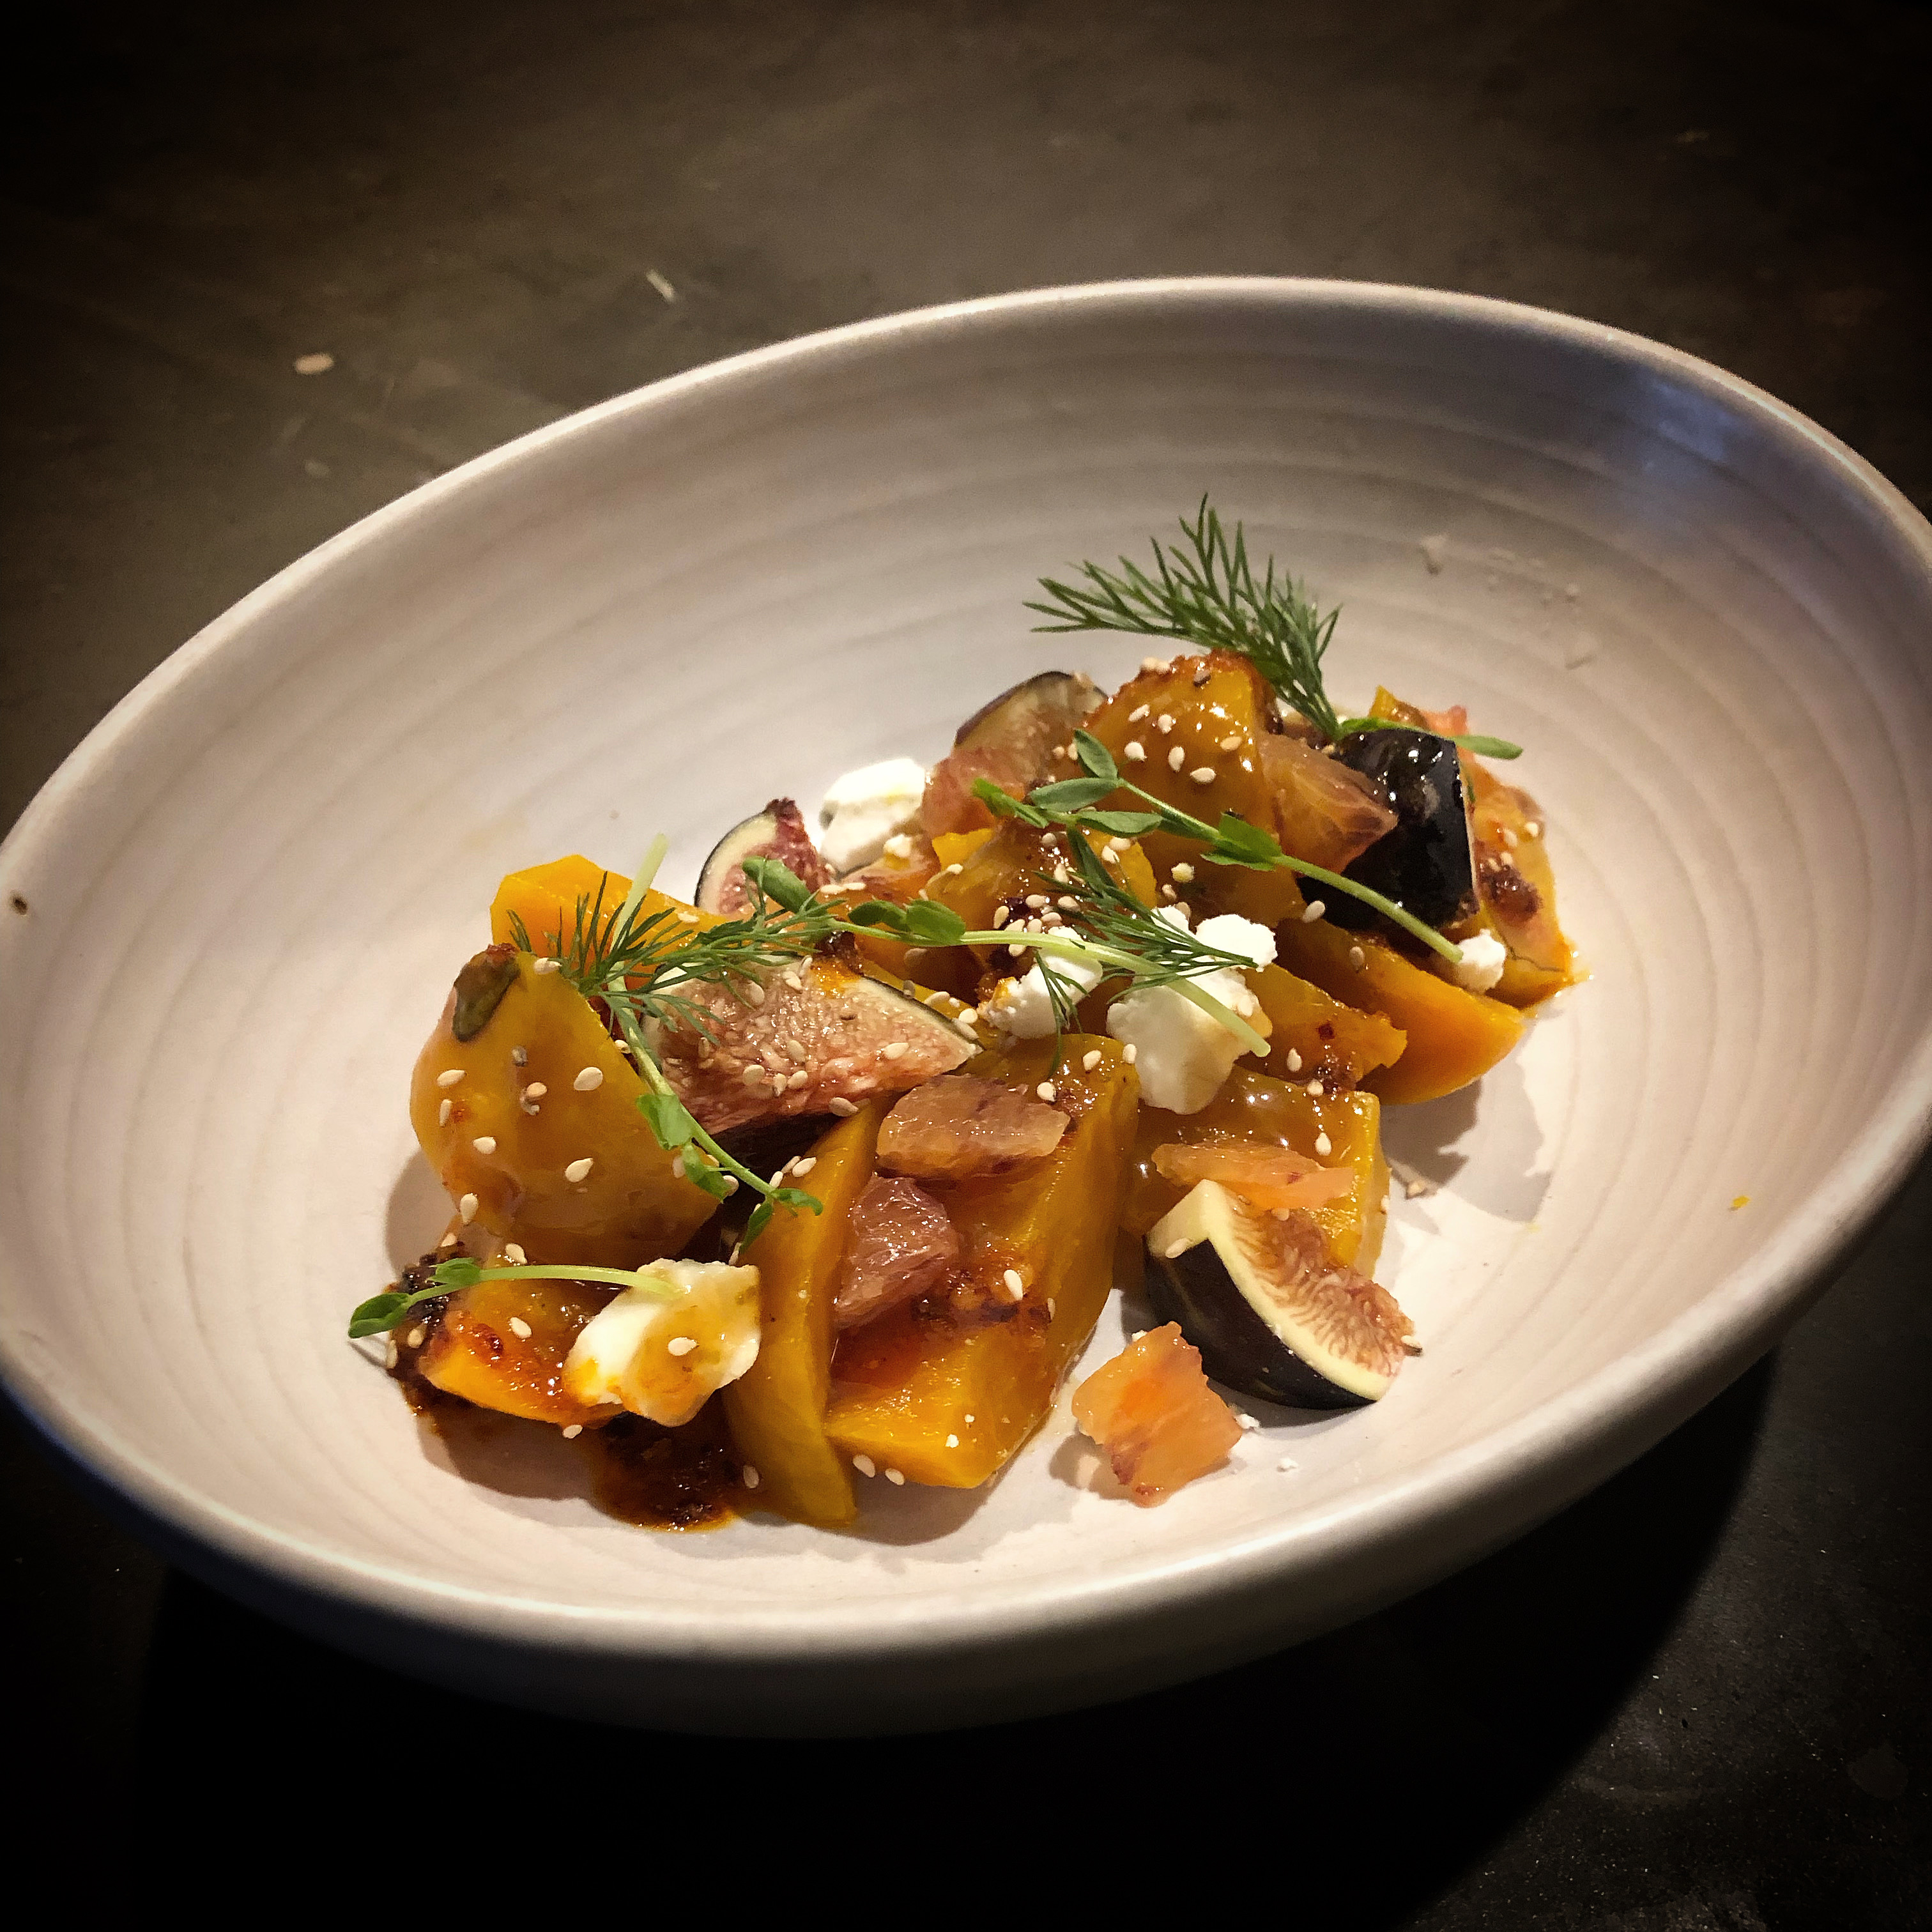 A plate of golden beets, figs, sesame seeds, and goat cheese at Chelo, a pop-up based at Magna in Portland, Oregon.